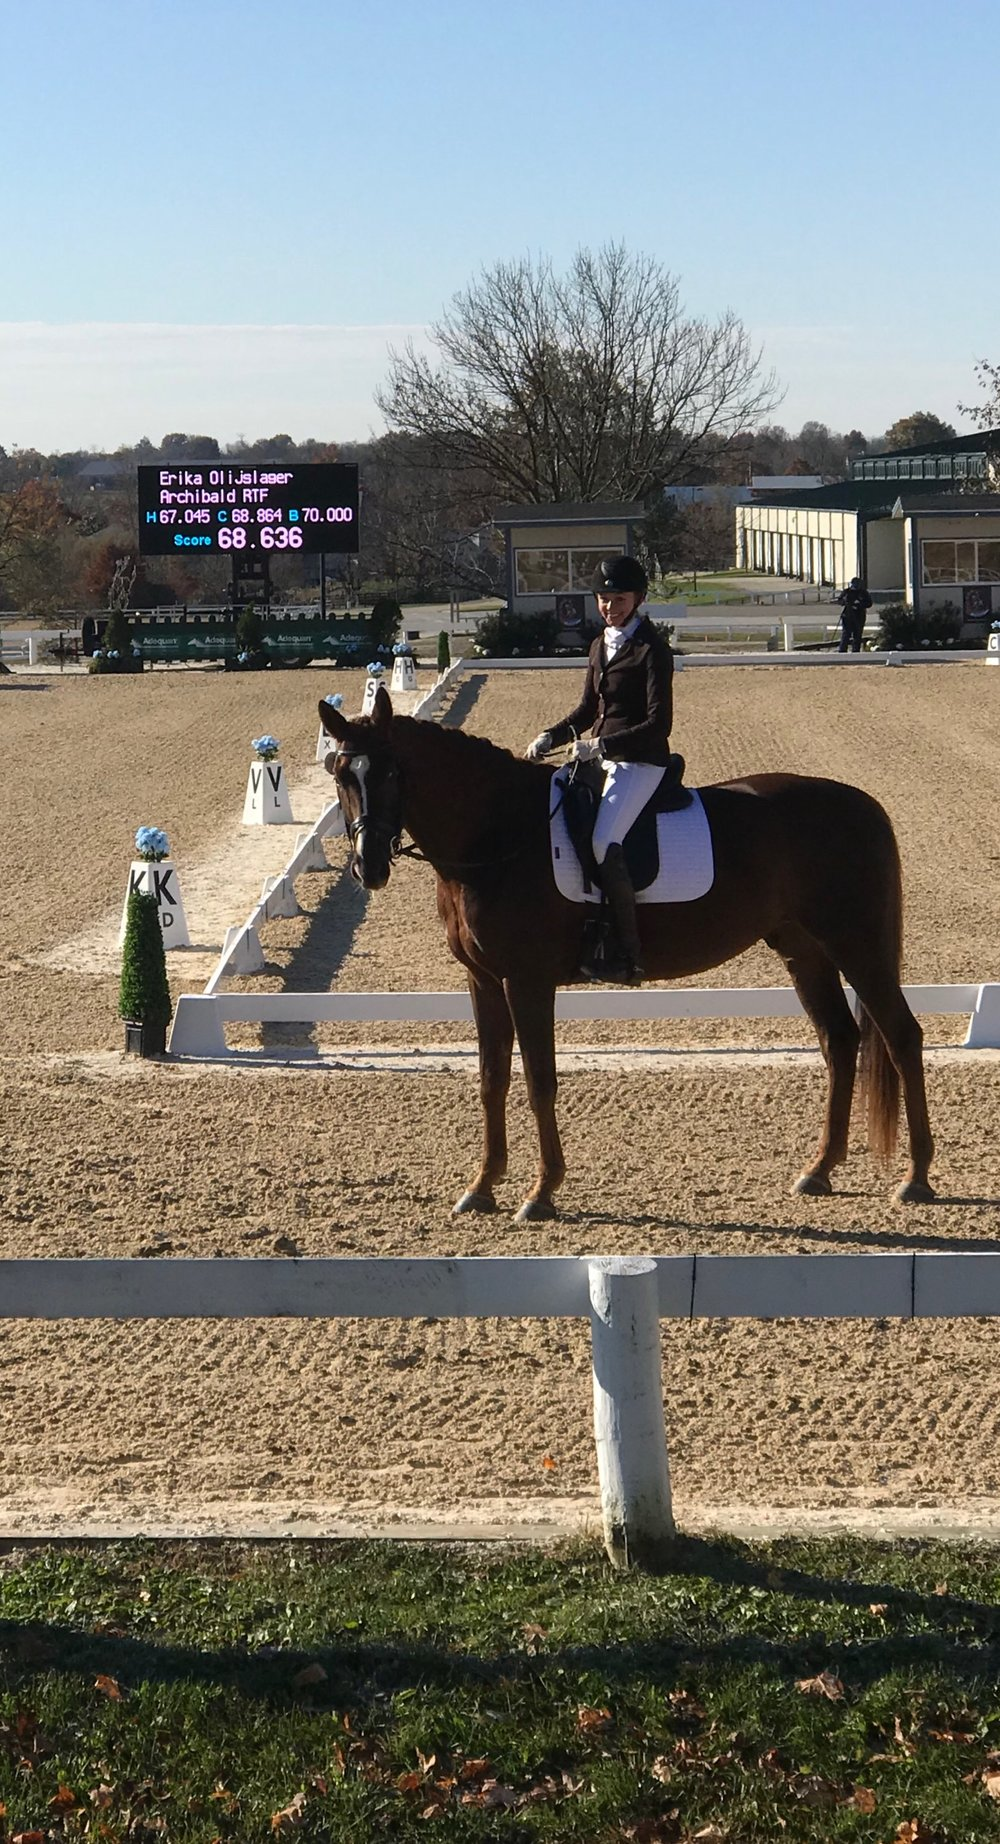 Erika Olijslager & Archibald RTF   6th in the AA Training Level Championship